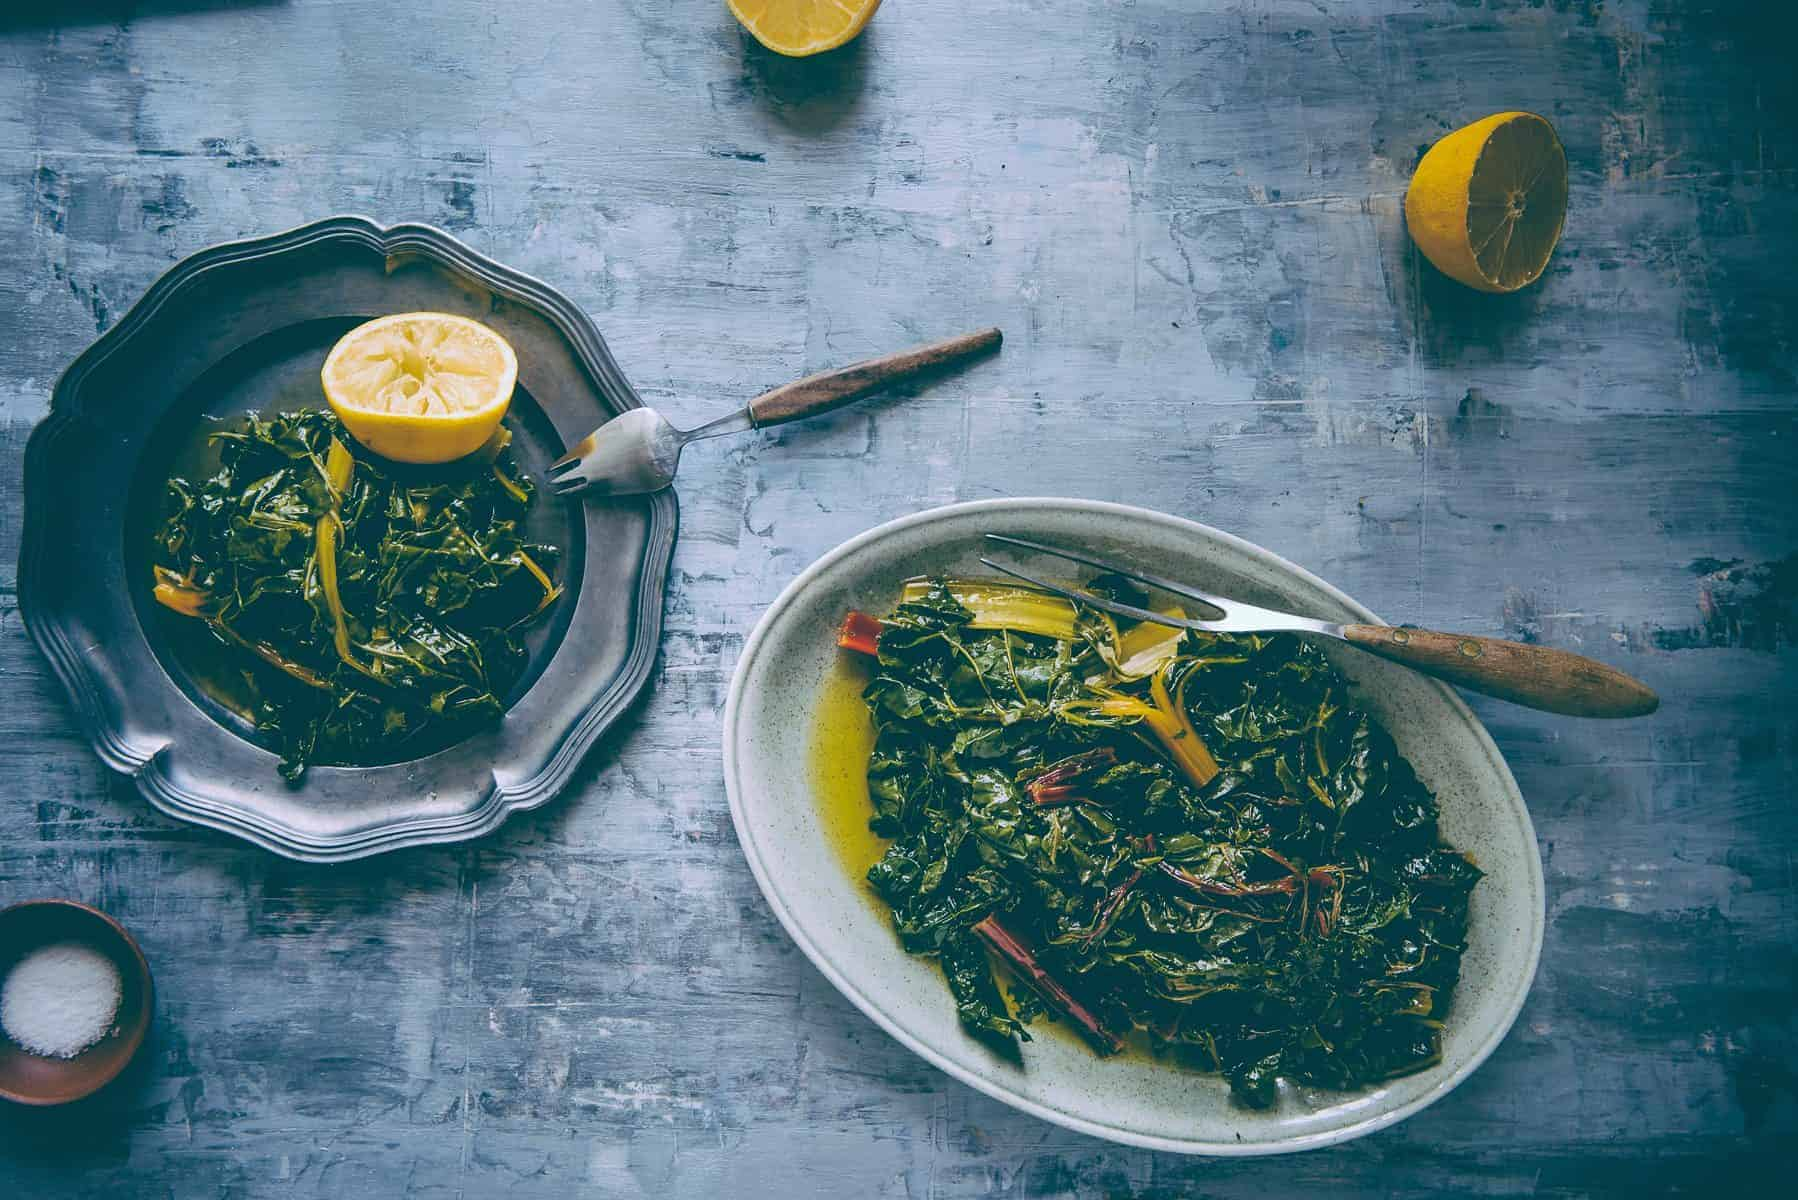 blanched rainbow chard with olive oil and lemon juice recipe